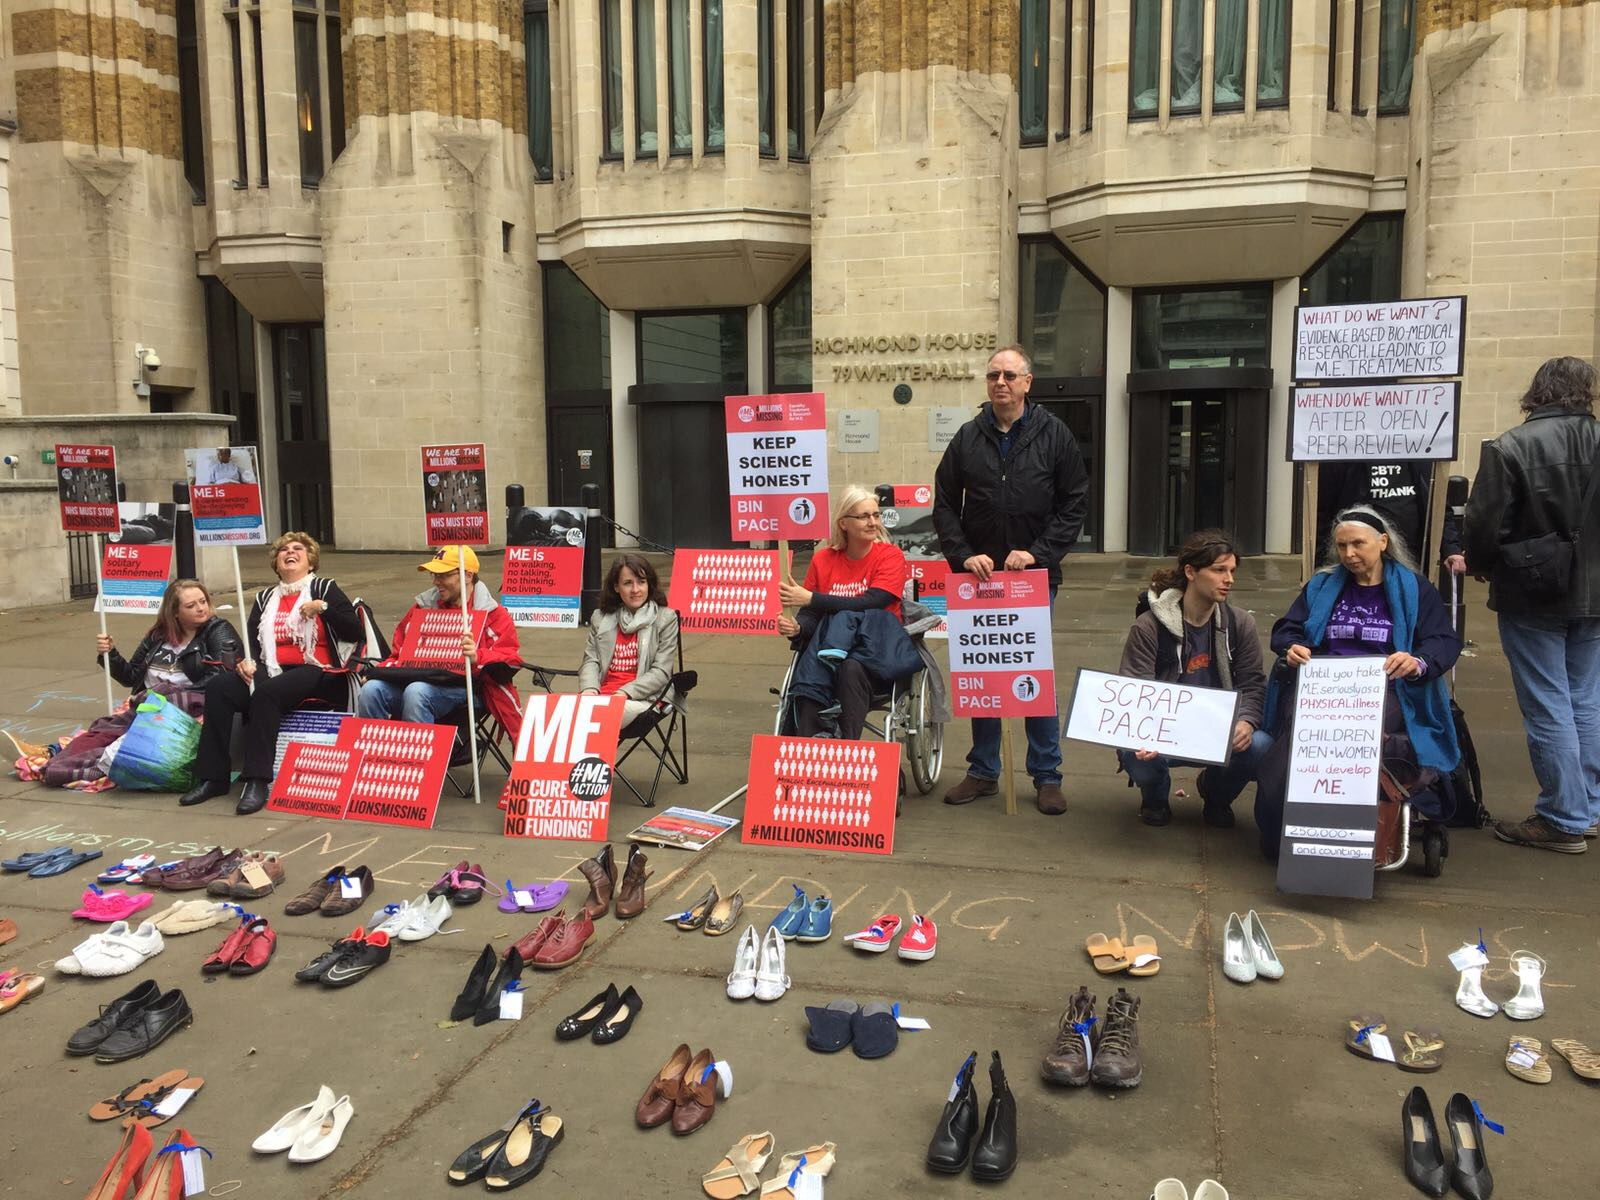 Shoes displayed in front of Whitehall with a group of protestors behind